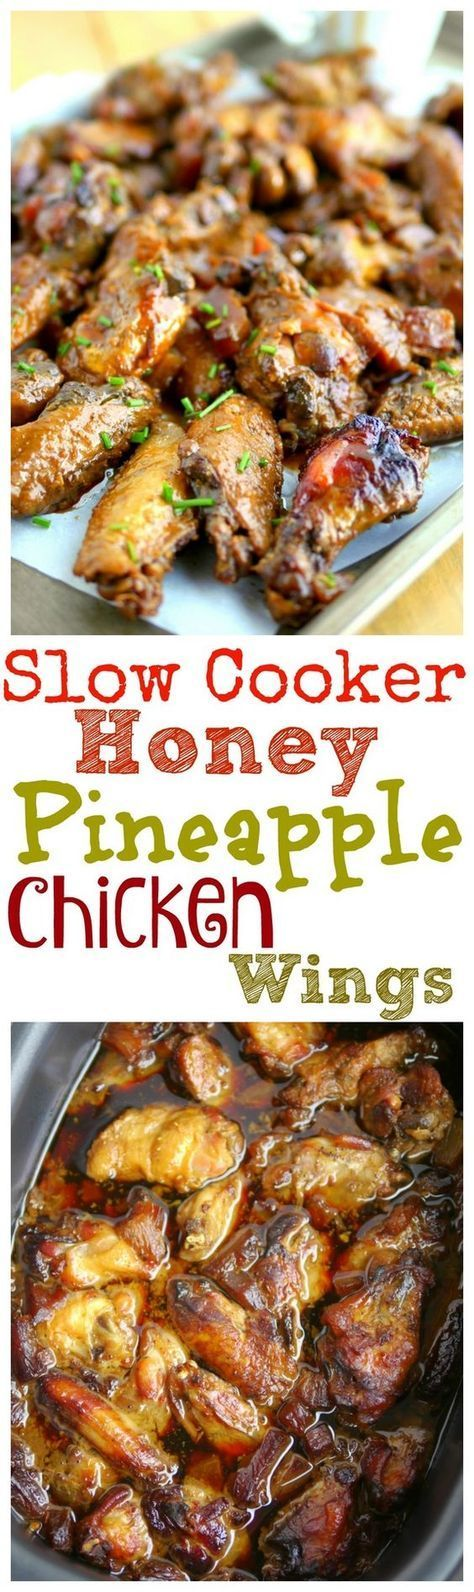 Slow Cooker Honey Pineapple Chicken Wings | Recipe